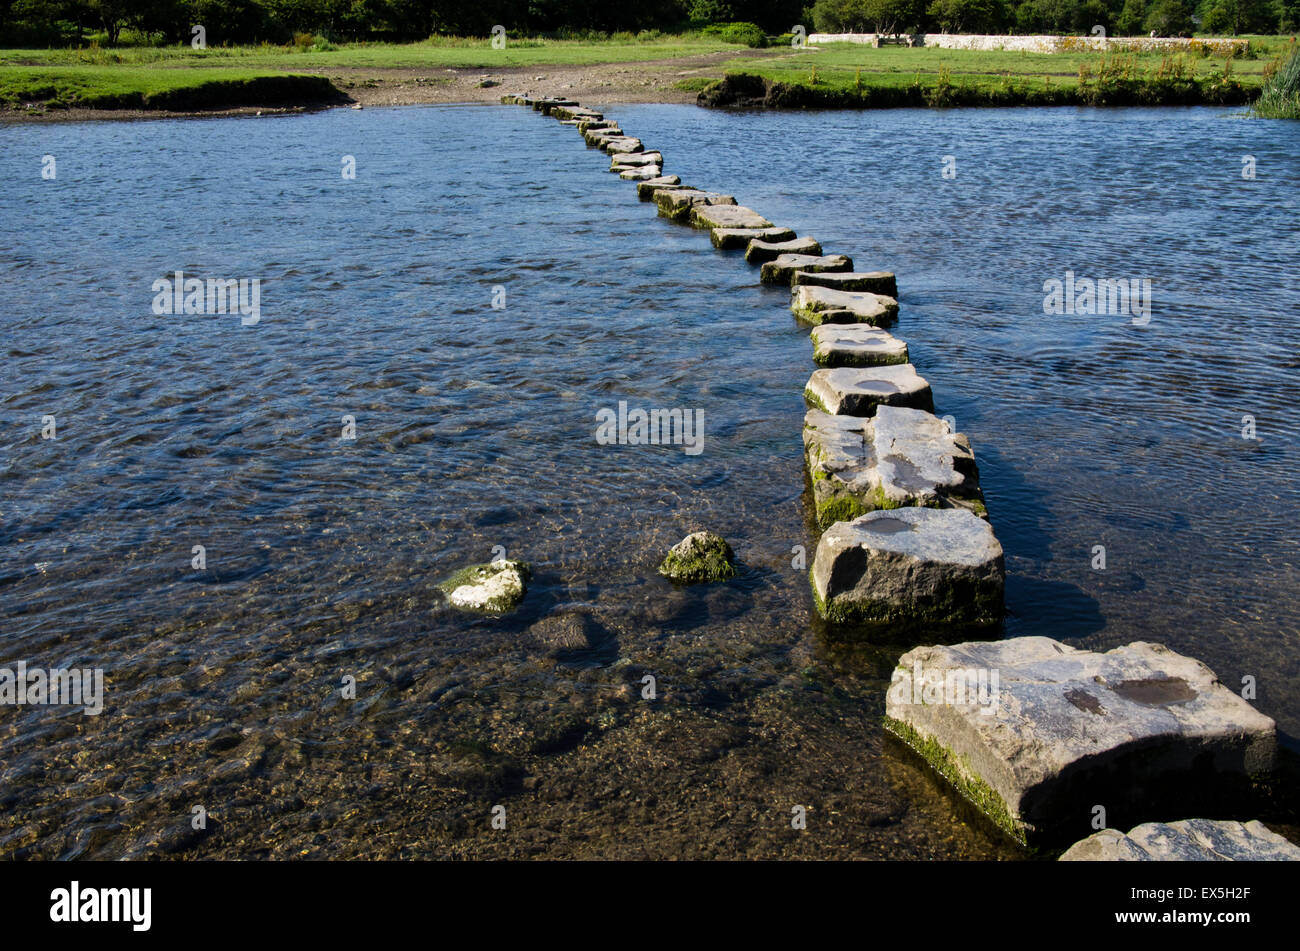 Stepping stones over the river Ogmore, South Wales, UK. - Stock Image